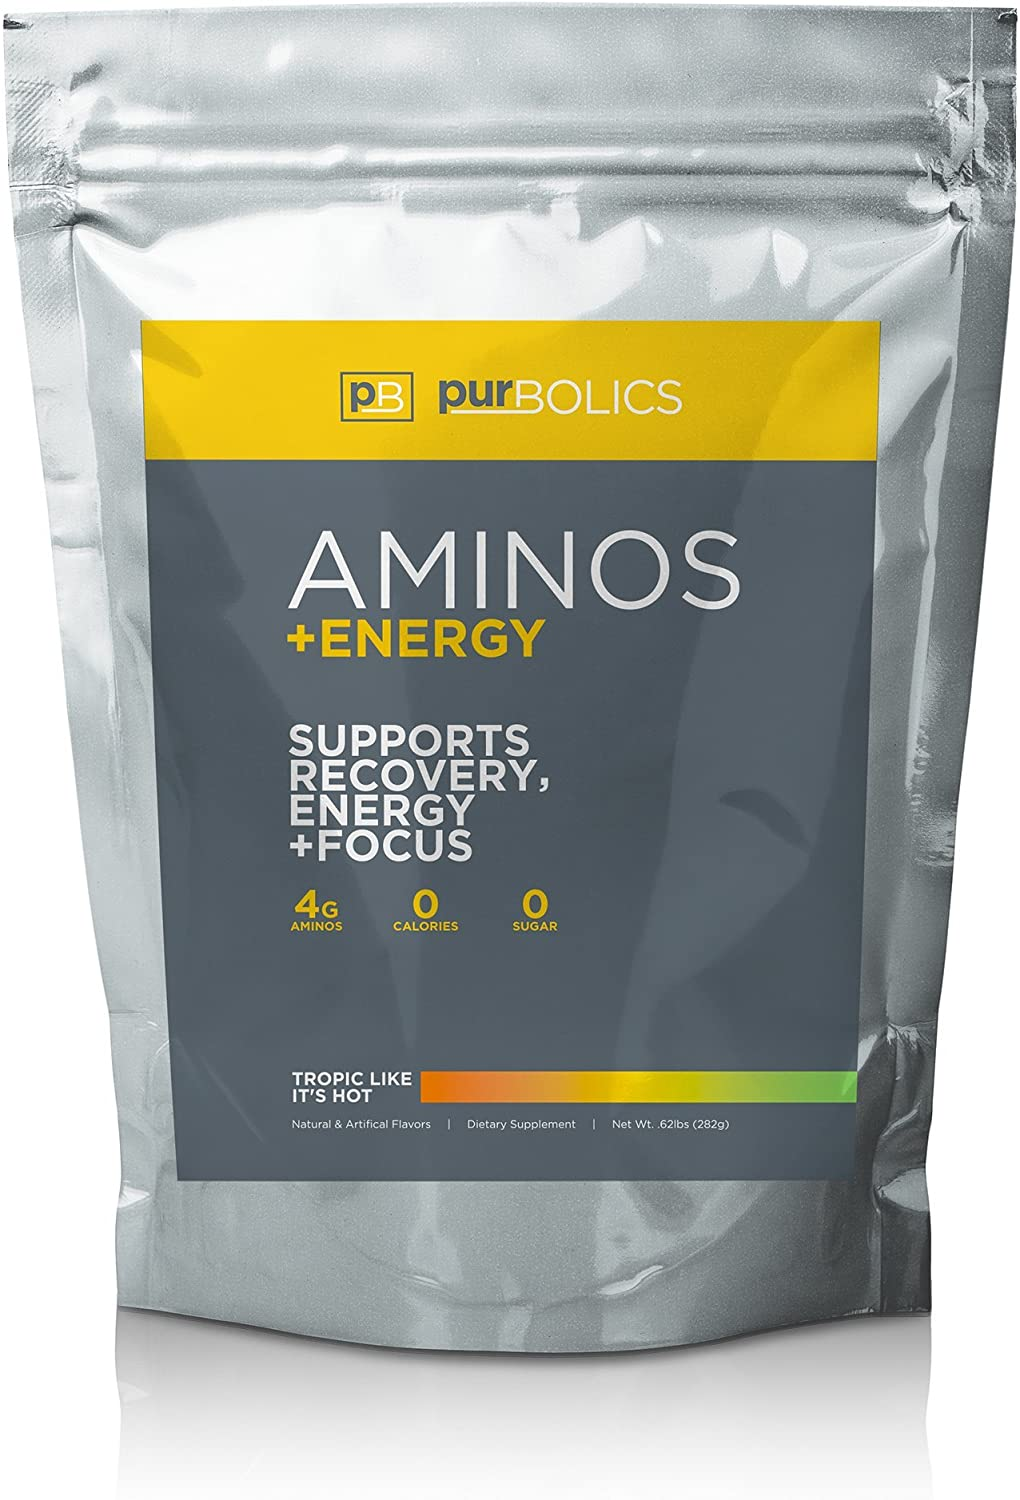 Purbolics Aminos + Energy | Supports Recovery, Energy & Focus | 95mg of Caffeine, 0 Calories & 60 Servings (Tropic Like It's Hot)